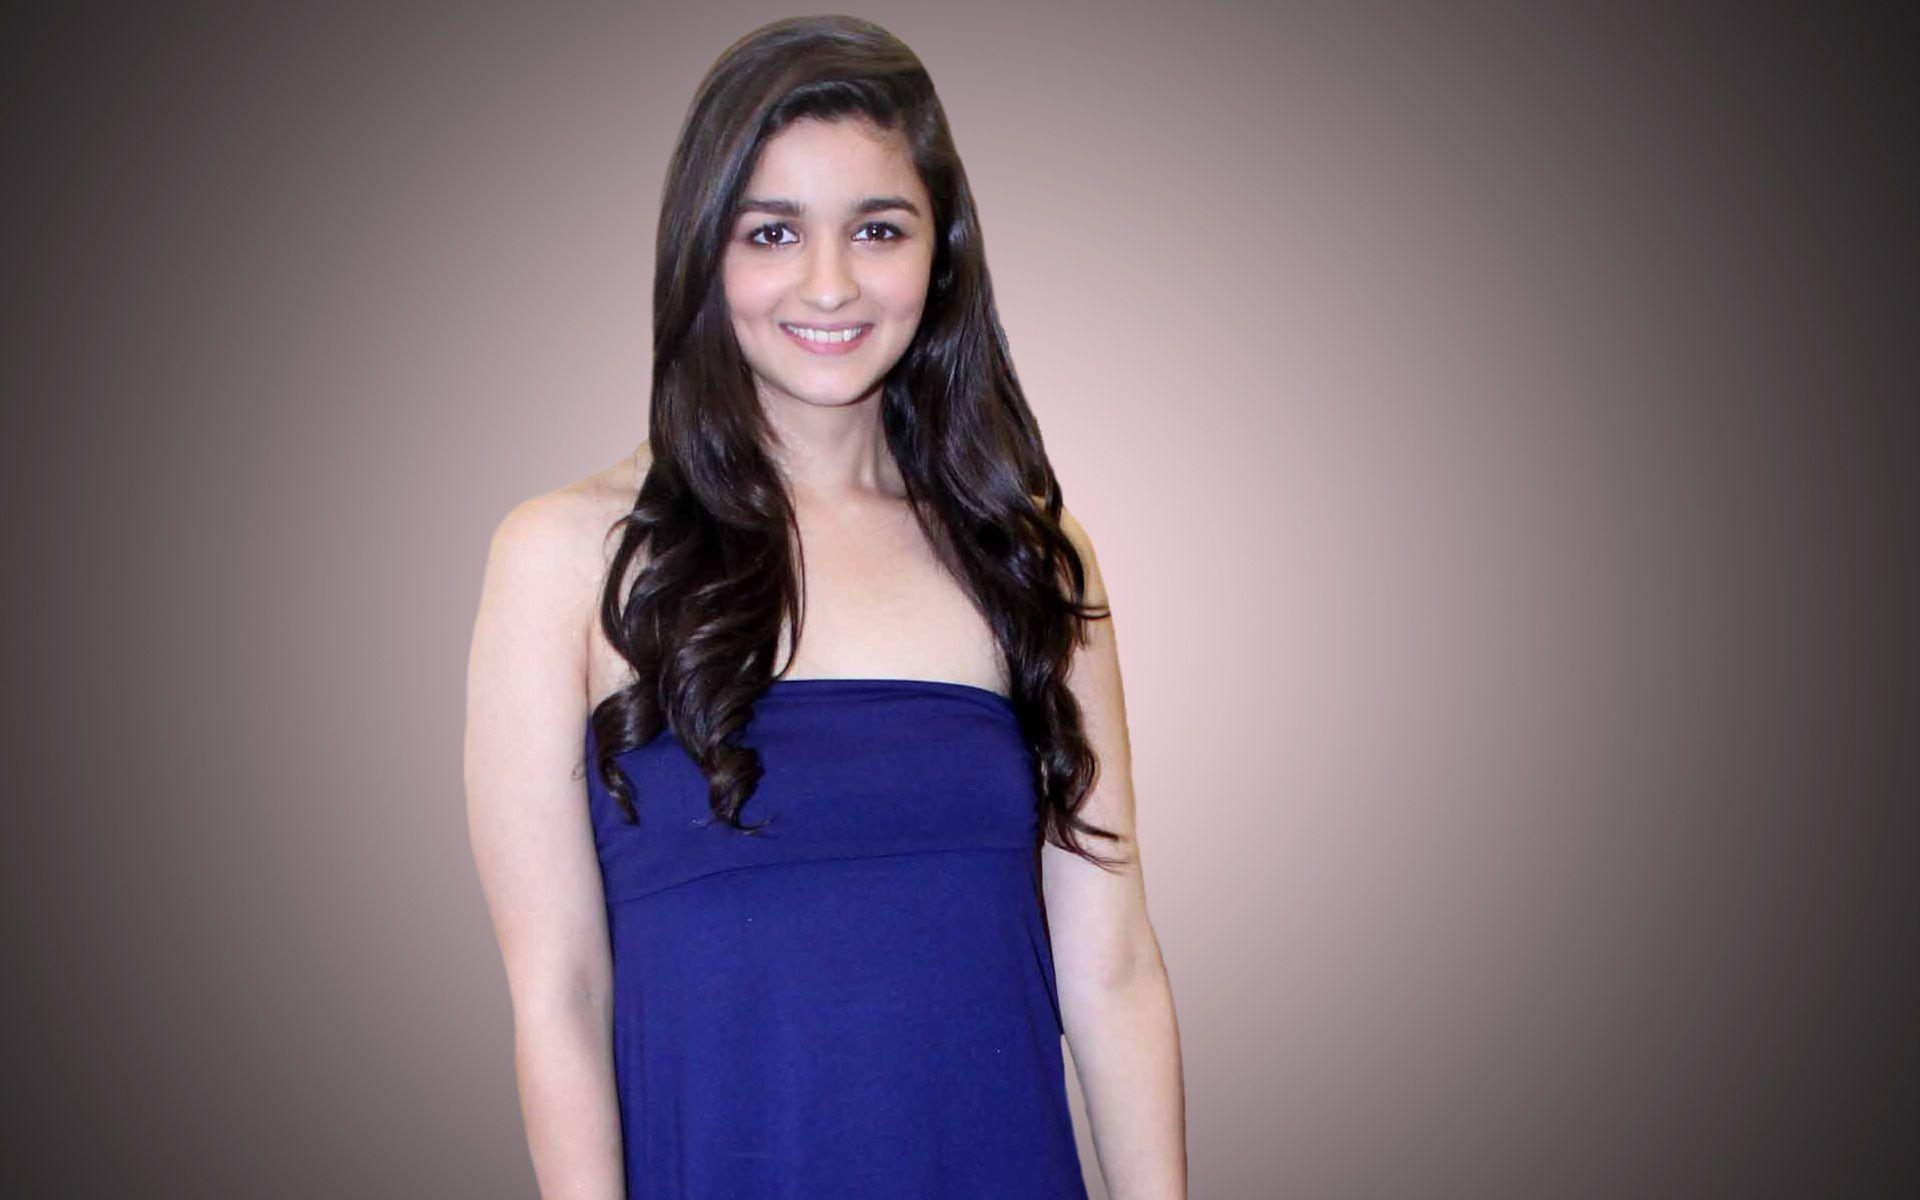 Cute Actress Alia Bhatt HD Wallpapers download HD Walls 1280×960